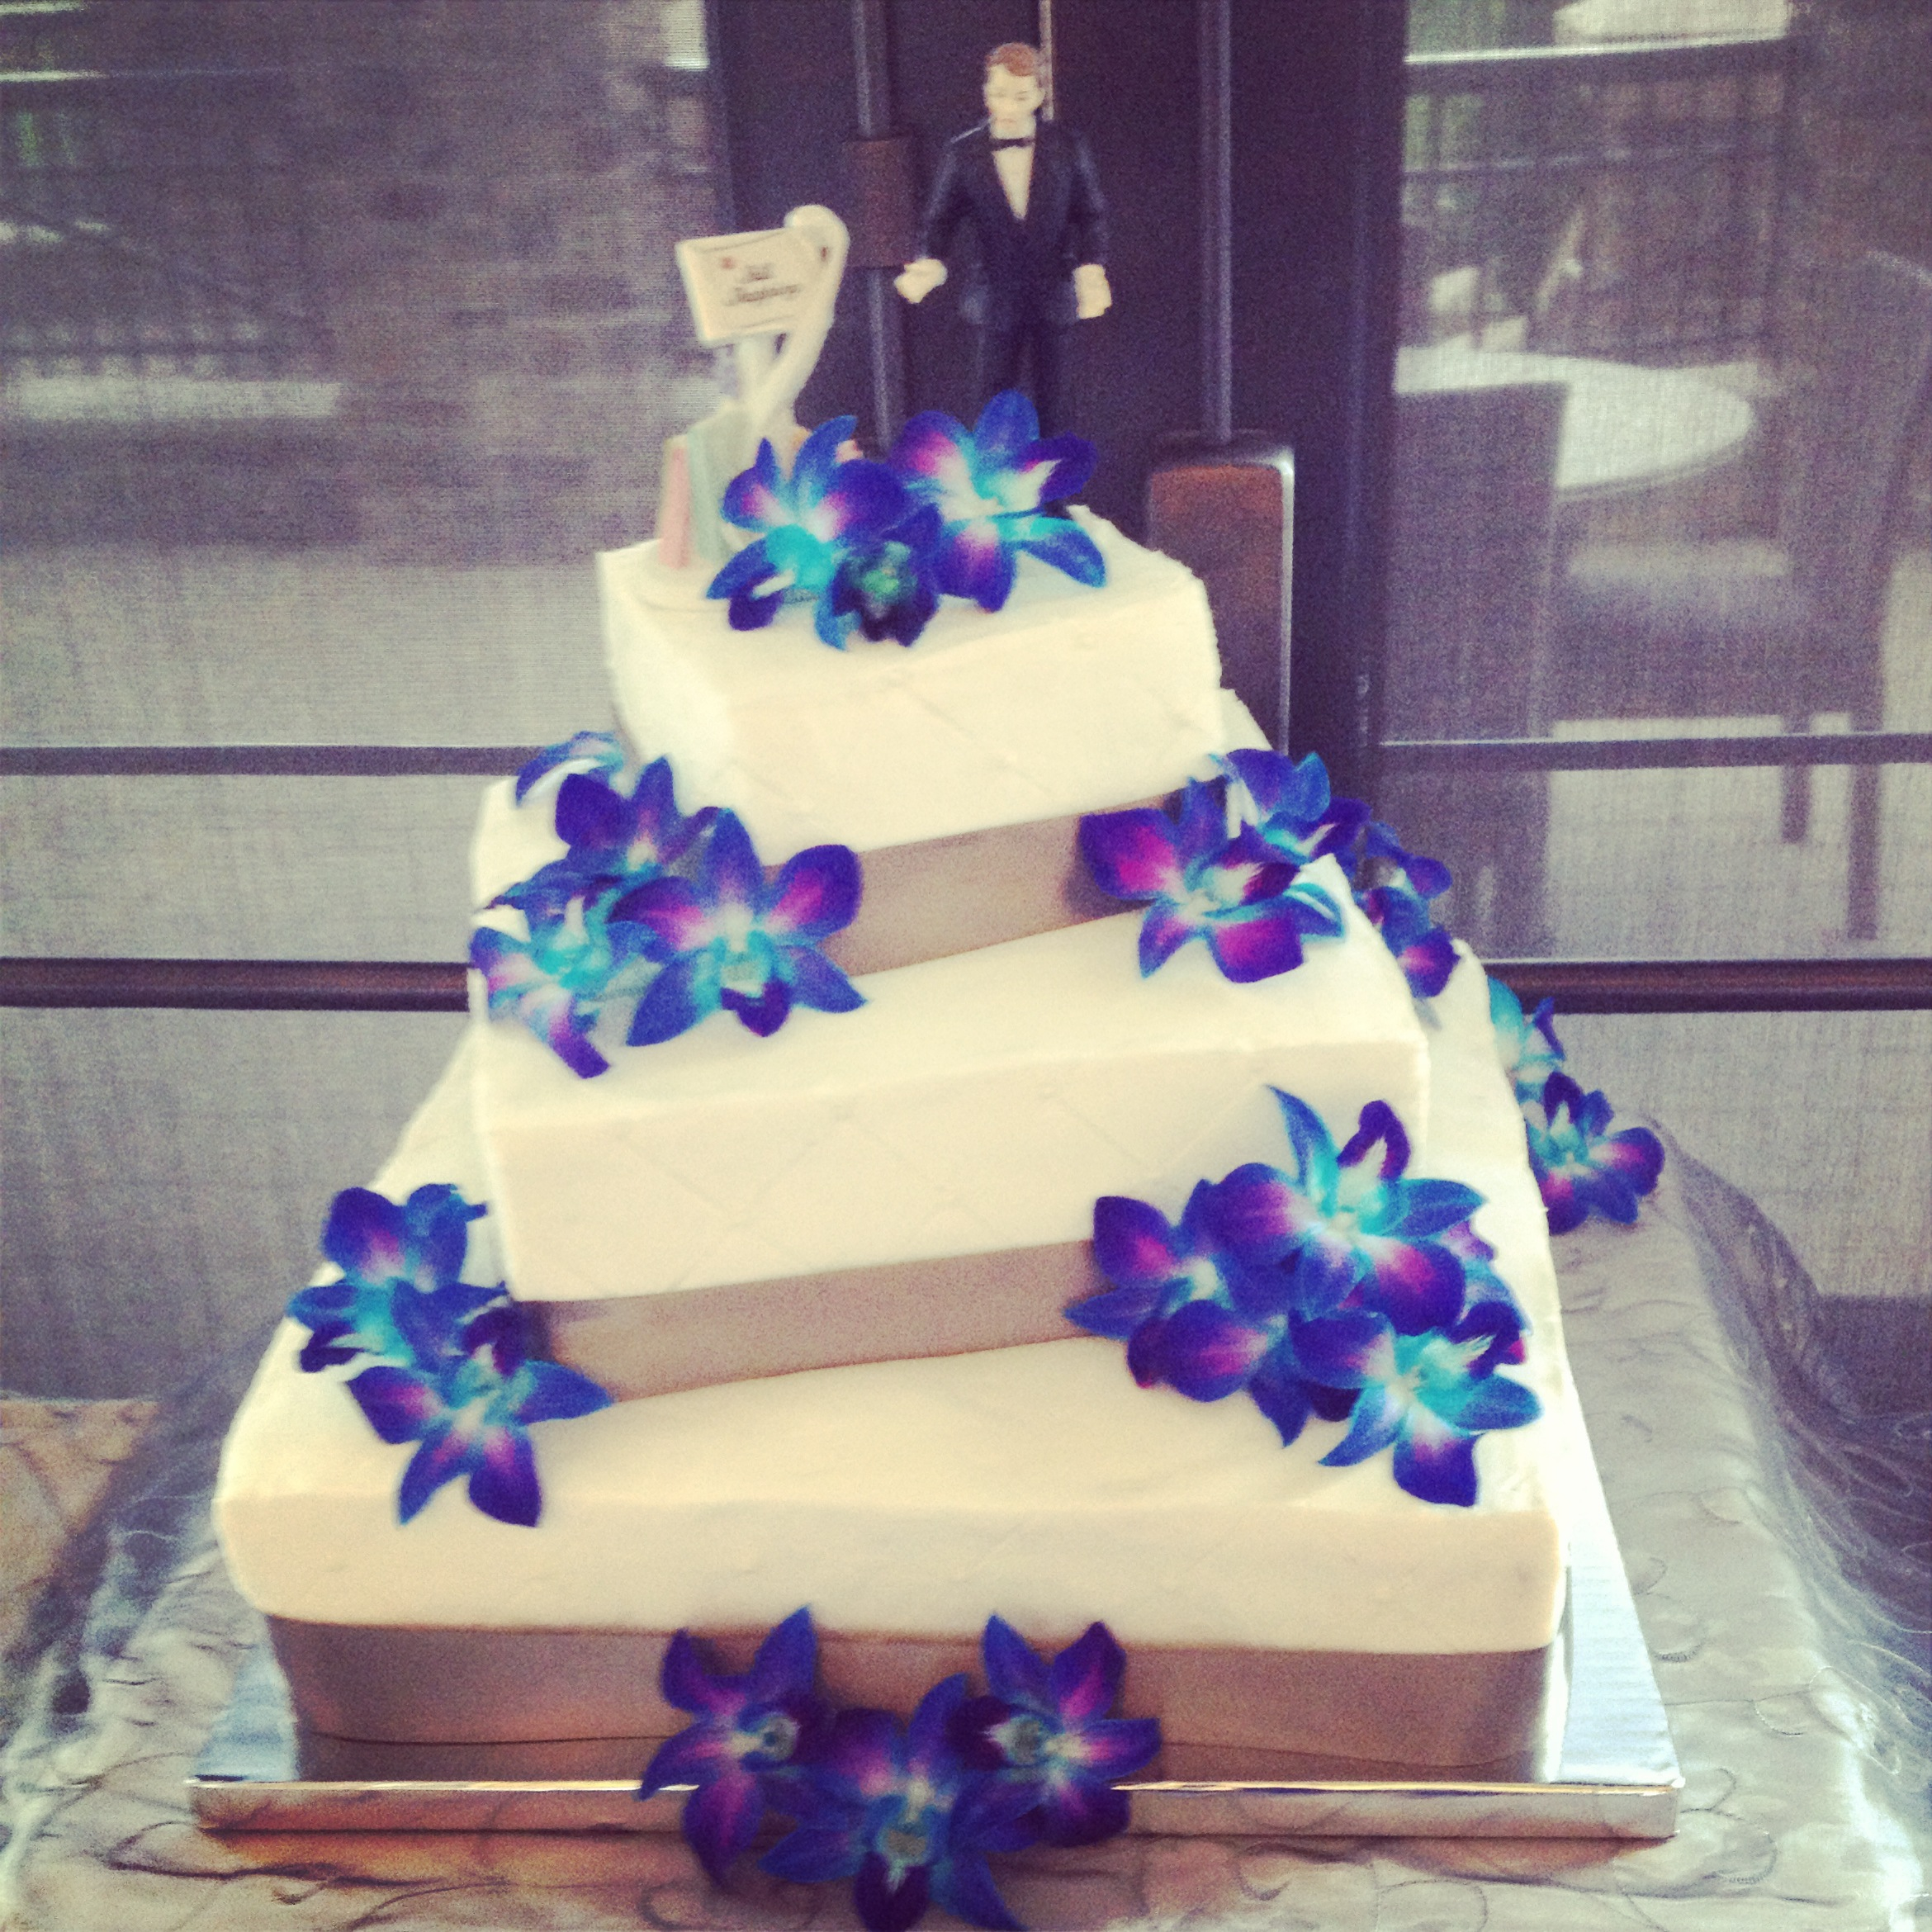 10 Tropical Wedding Cakes Purple And Blue Orchid Photo - Blue and ...